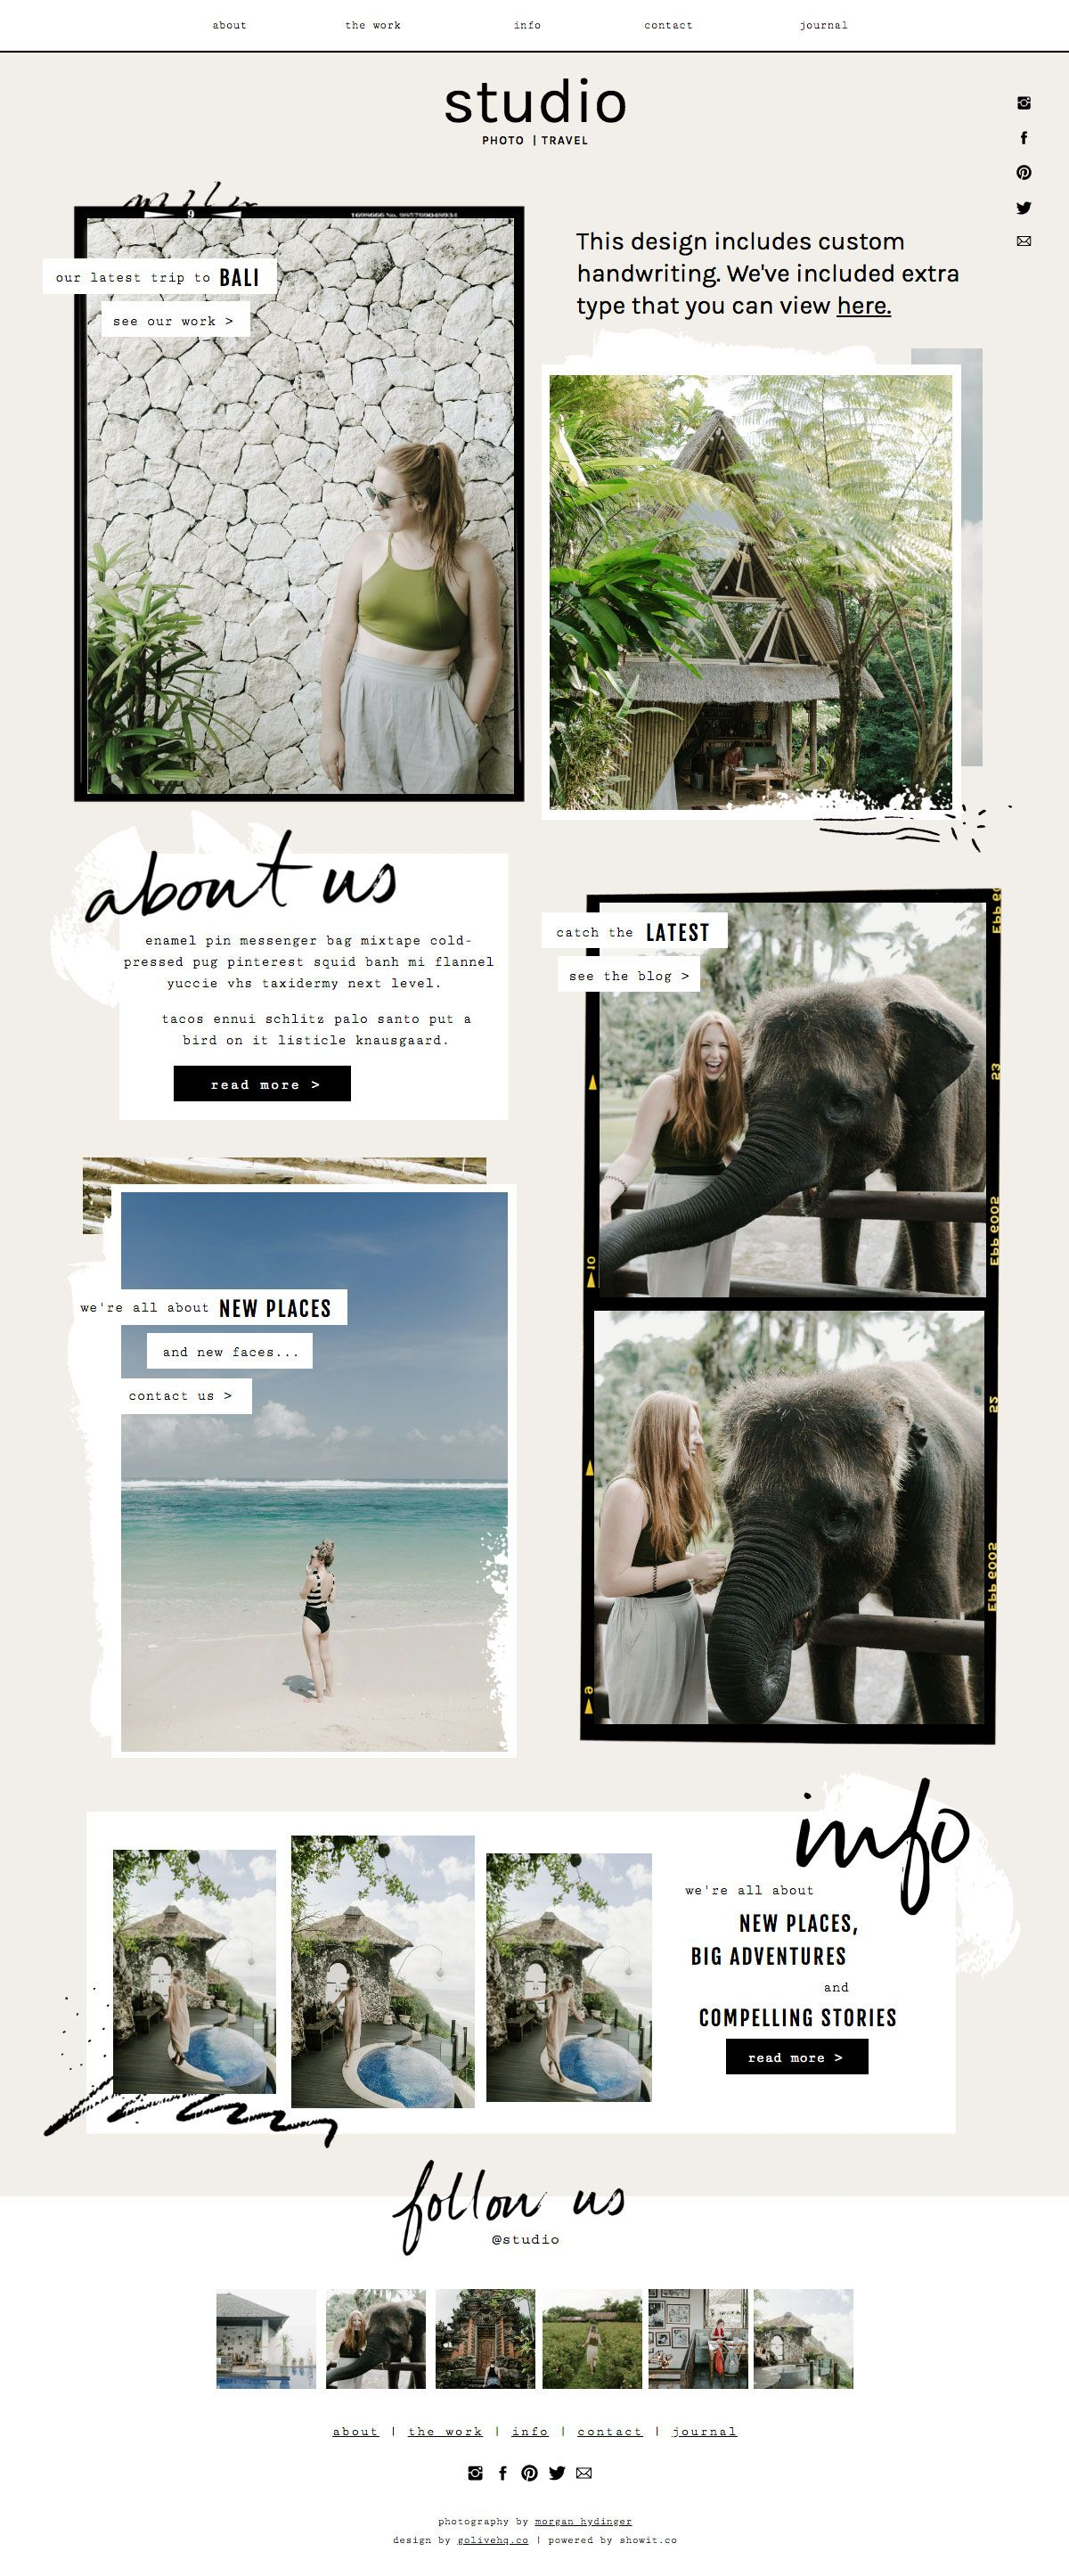 Hq photography responsive wp theme zim templates.